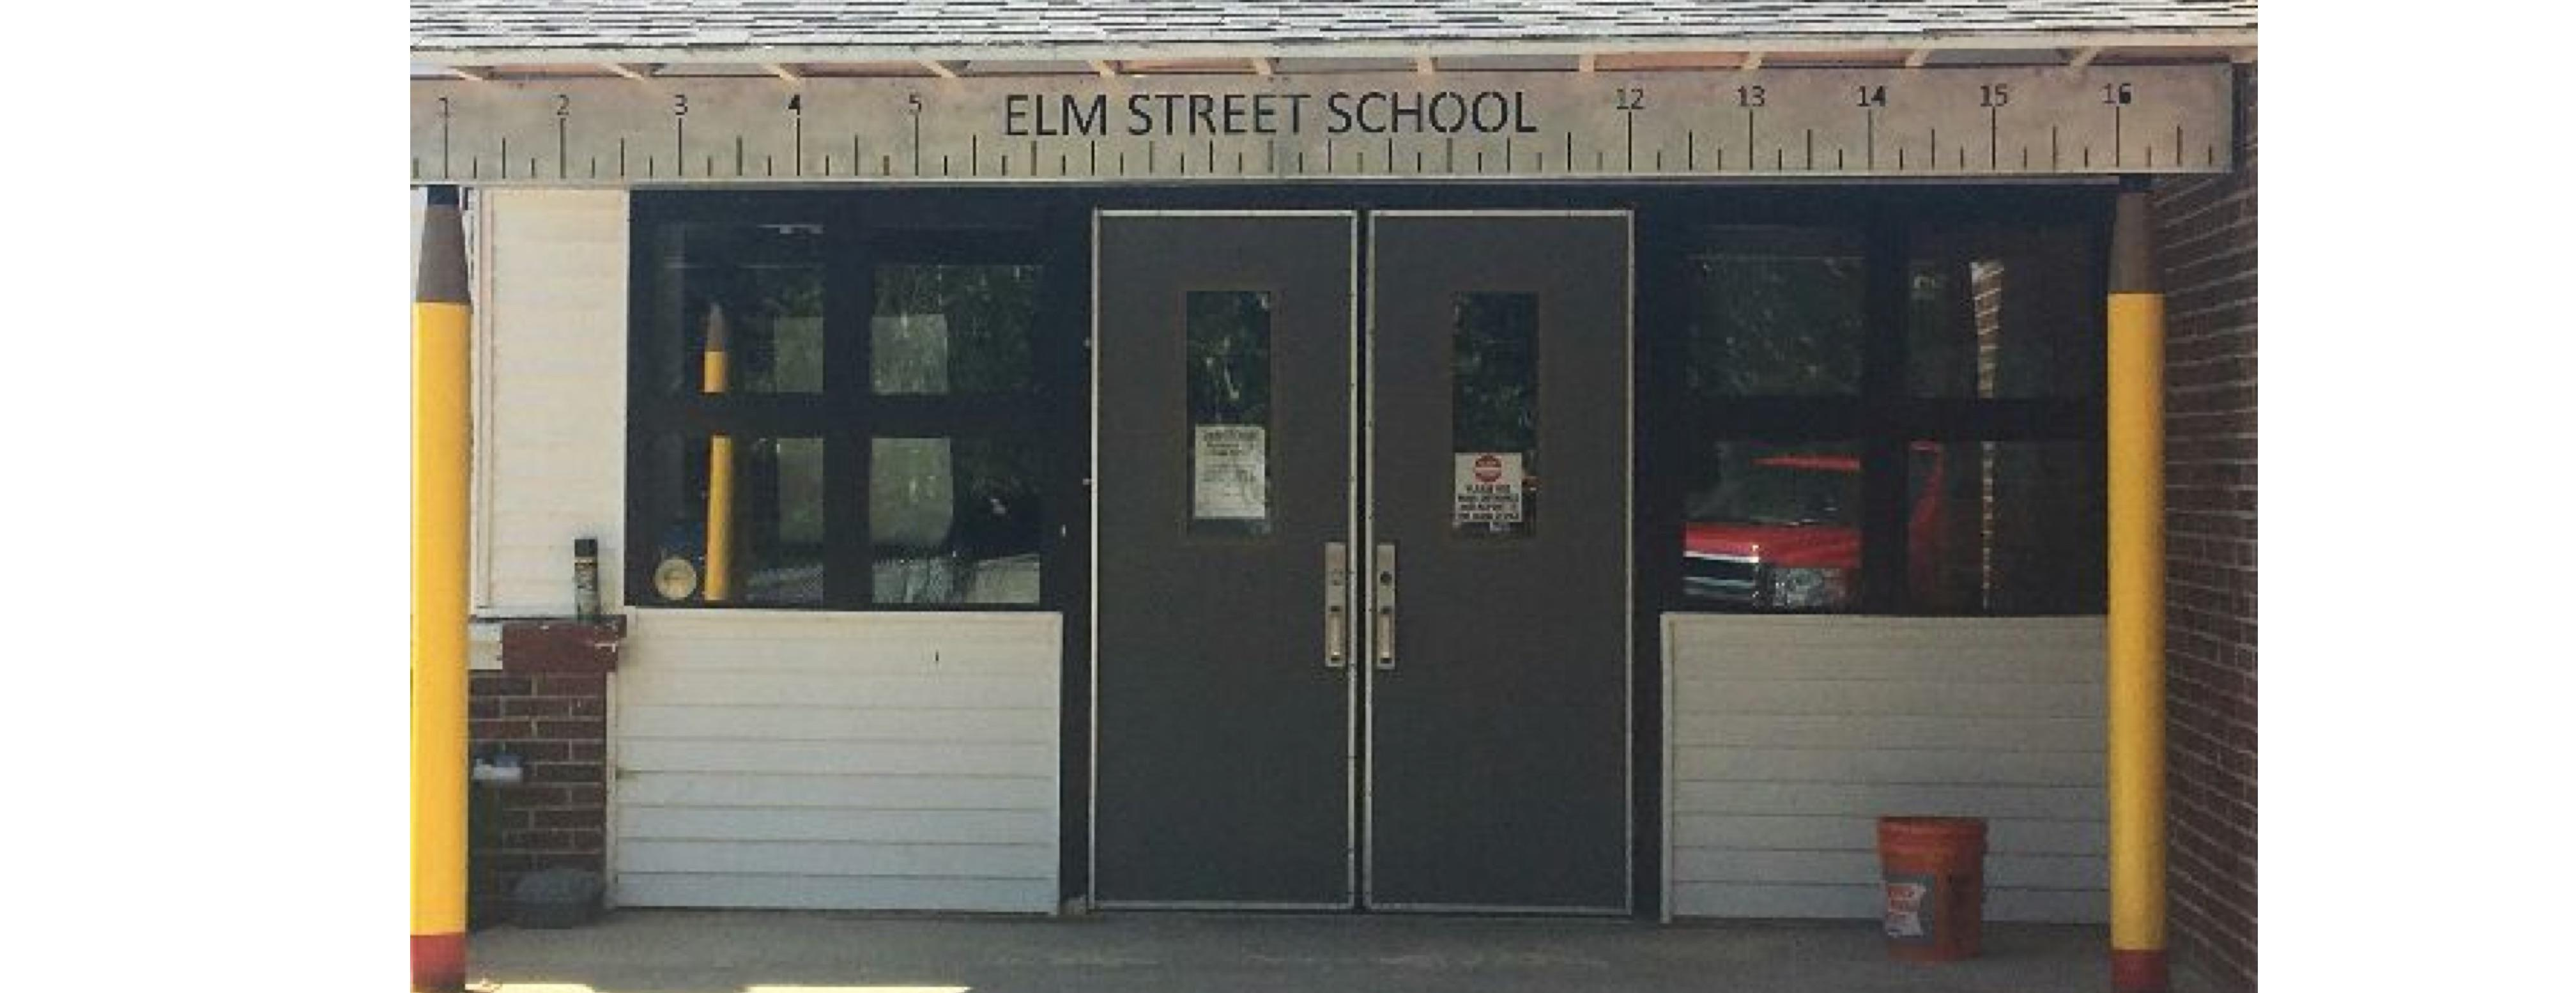 Photo of the pencils and ruler used in decor at the front of Elm Street School. Very cool!